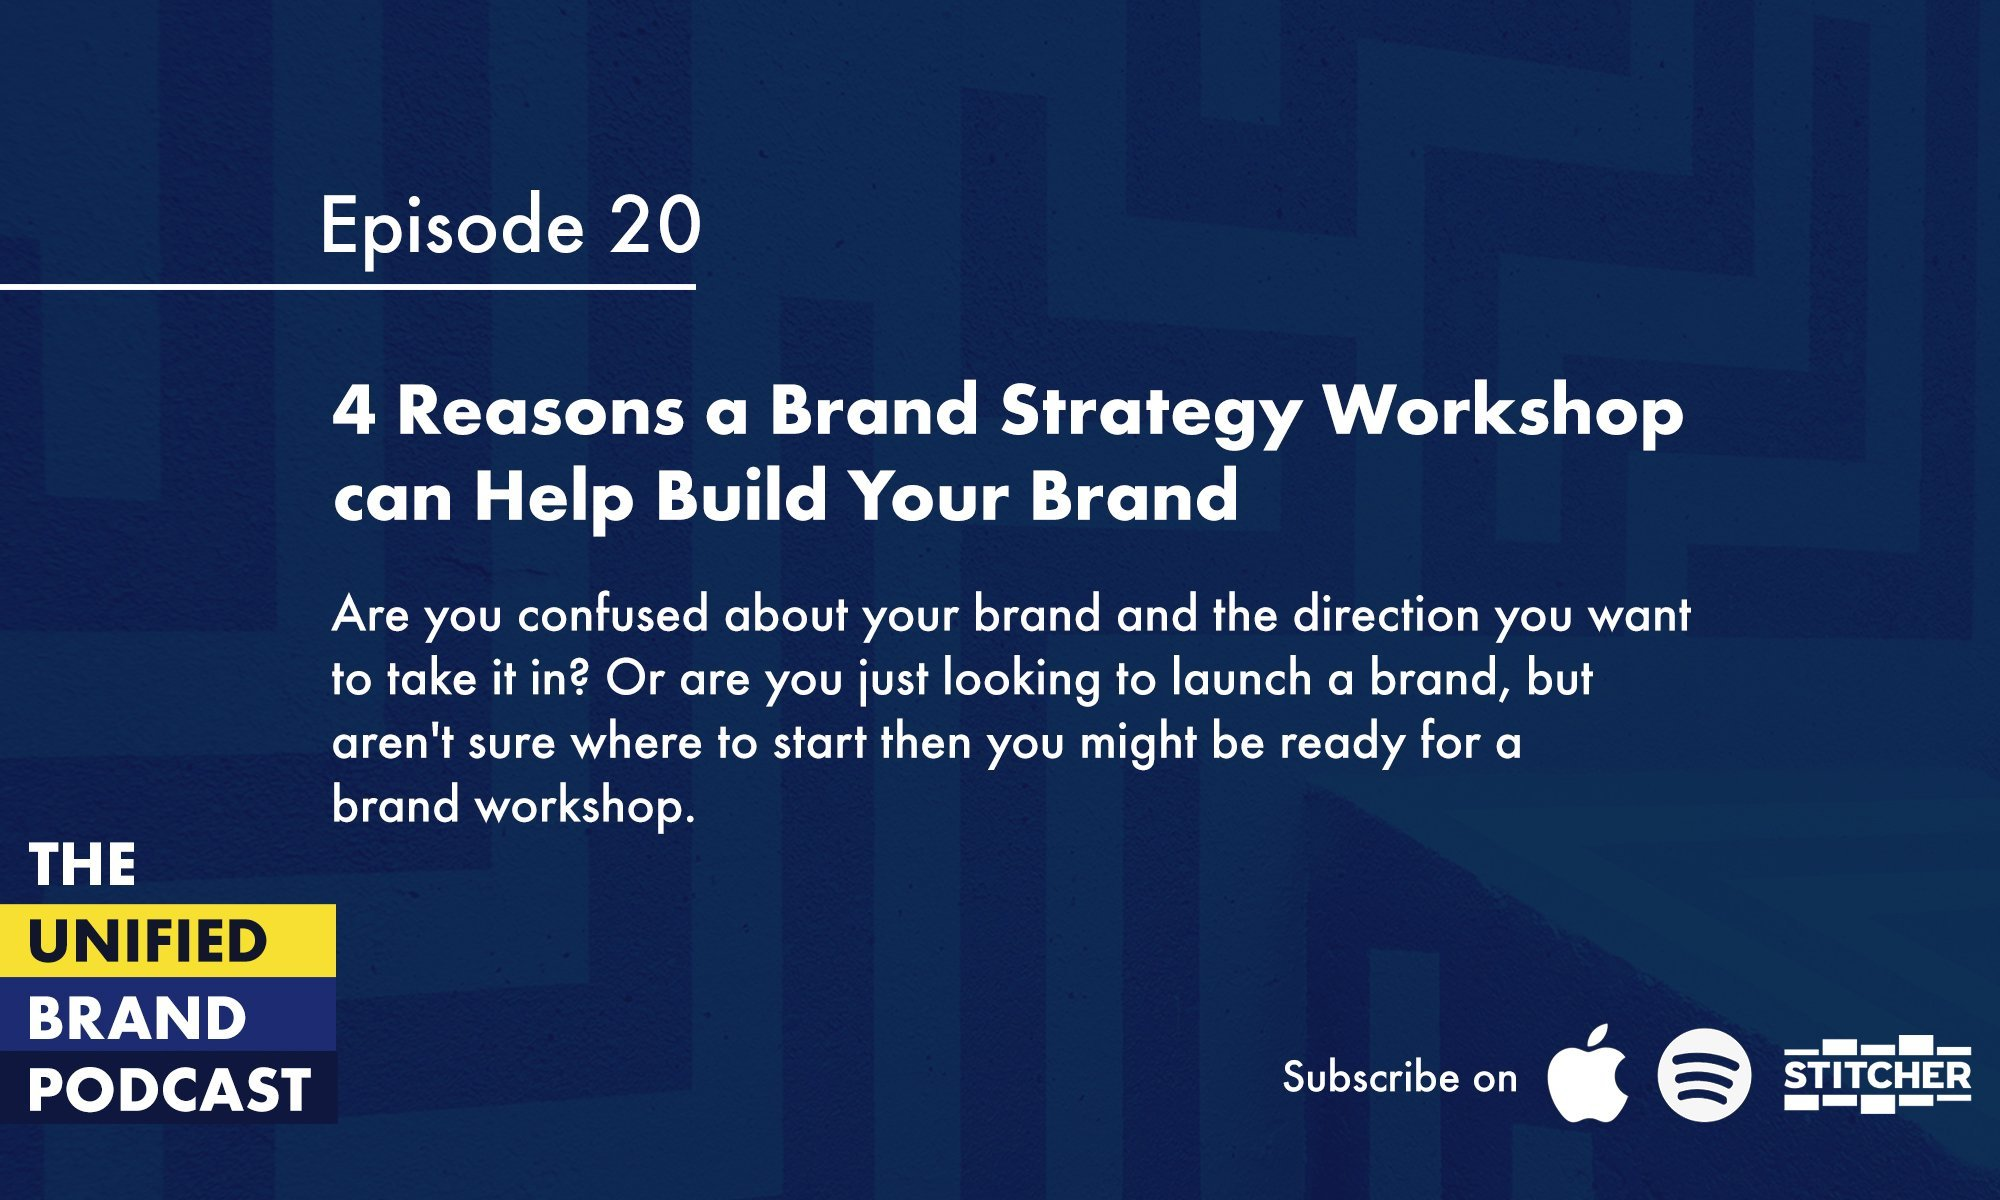 4 reasons brand workshop can help build your brand